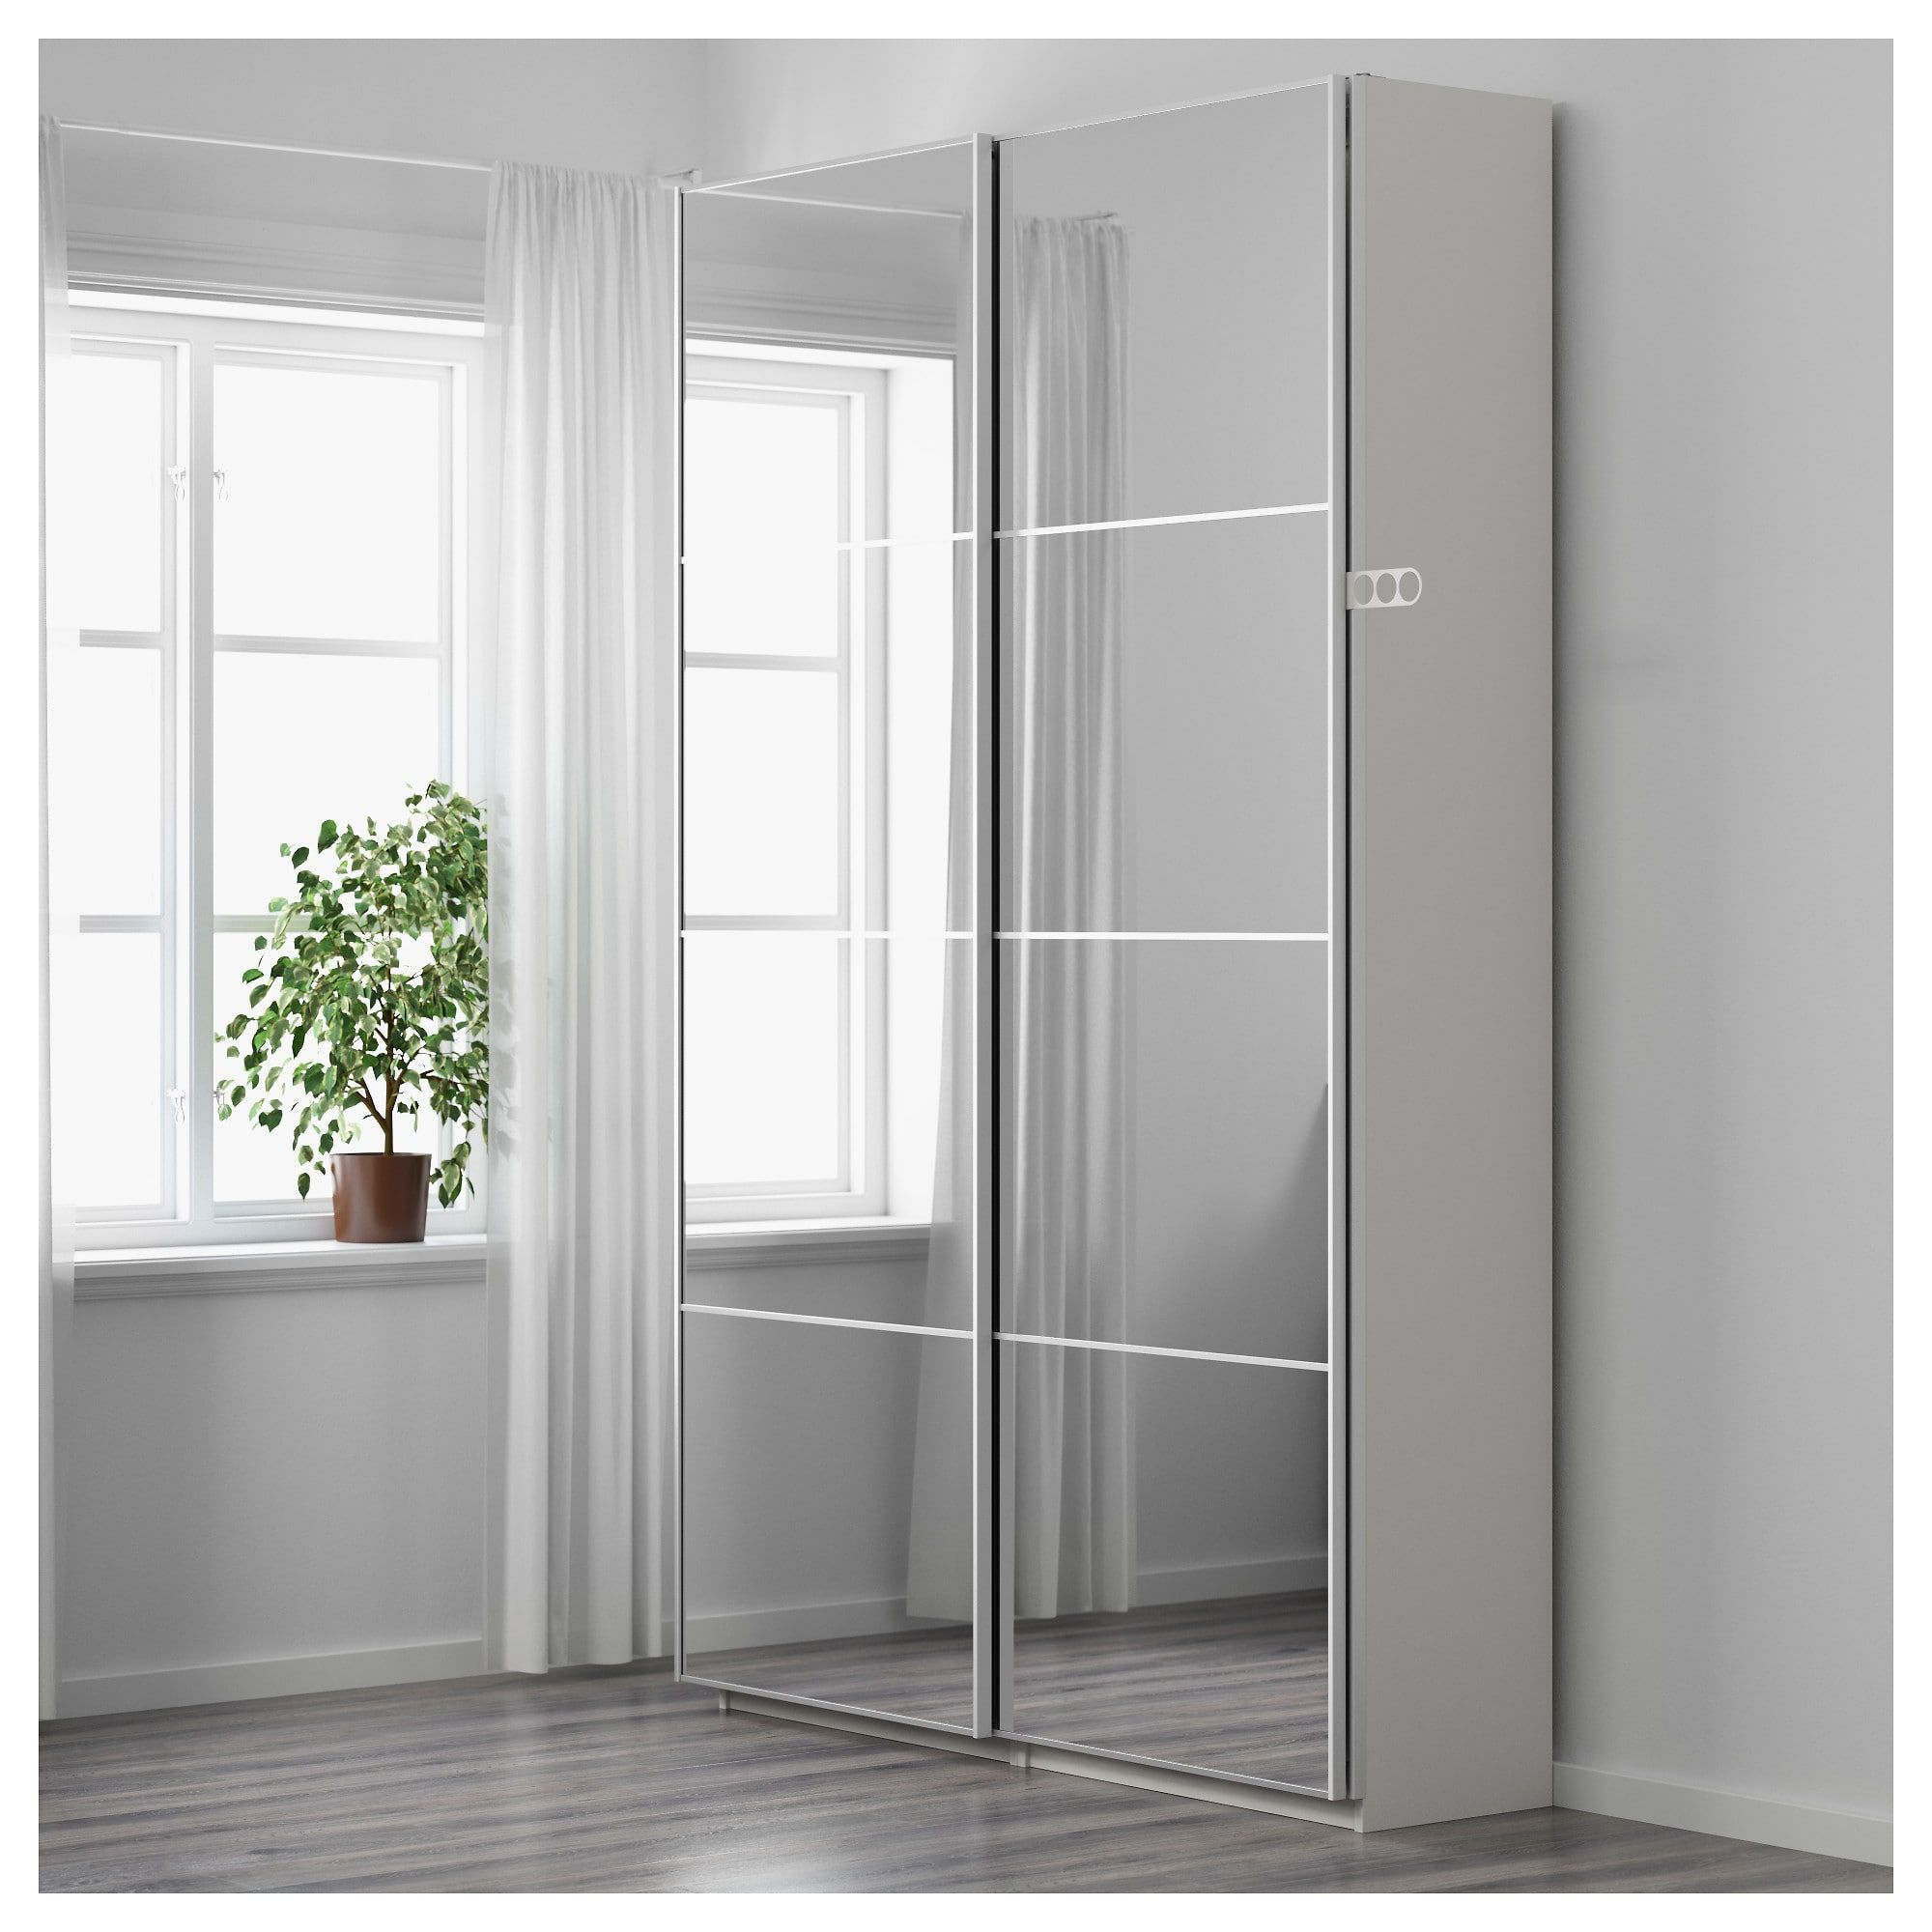 Image Result For Ikea Pax Auli Sliding Mirror Door Wardrobe Een